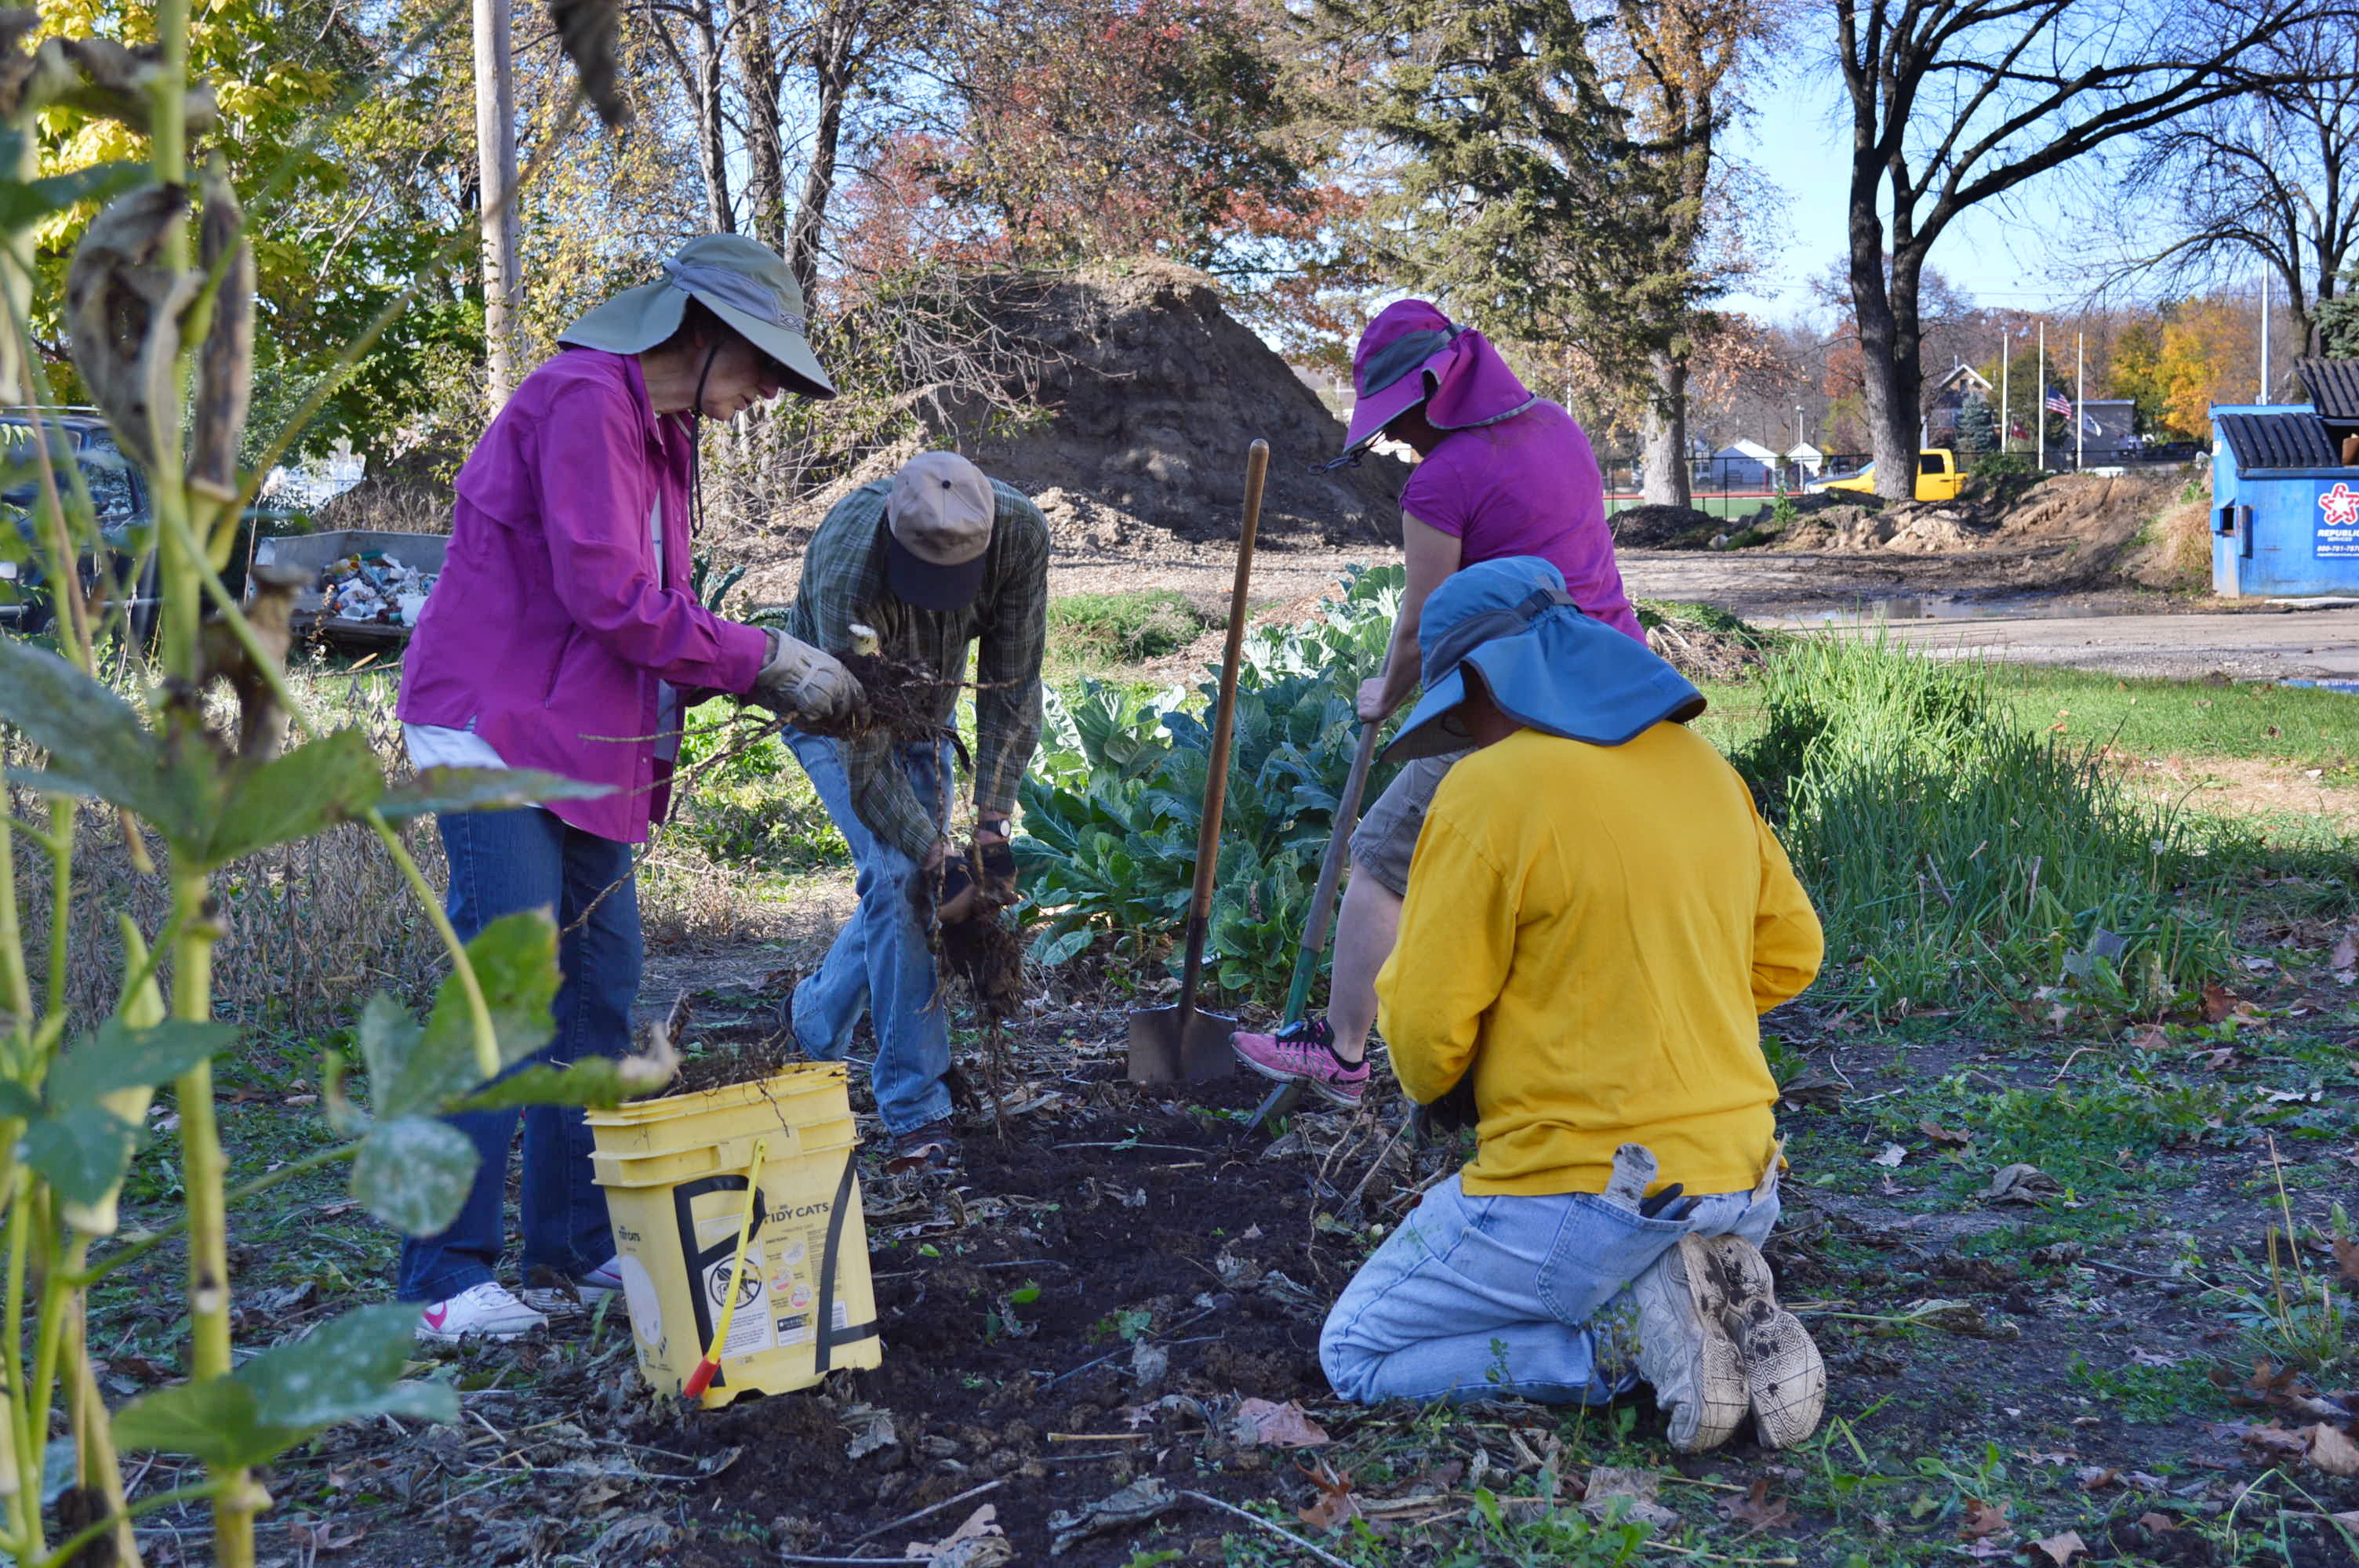 Community grows in Mound View Neighborhood garden